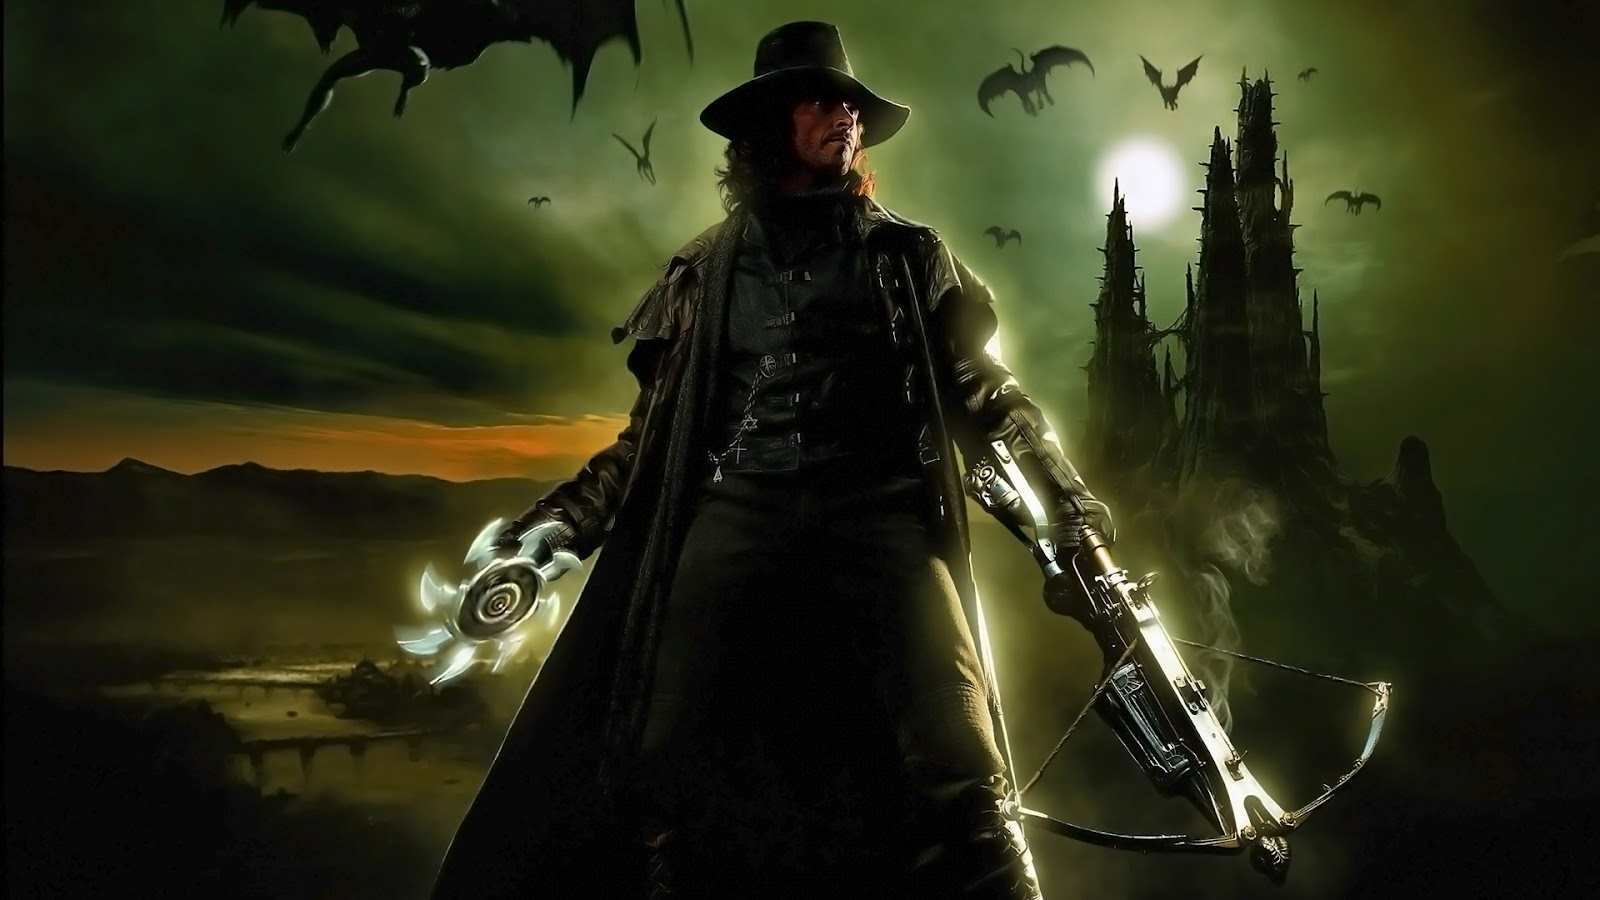 movie picture van helsing 2004